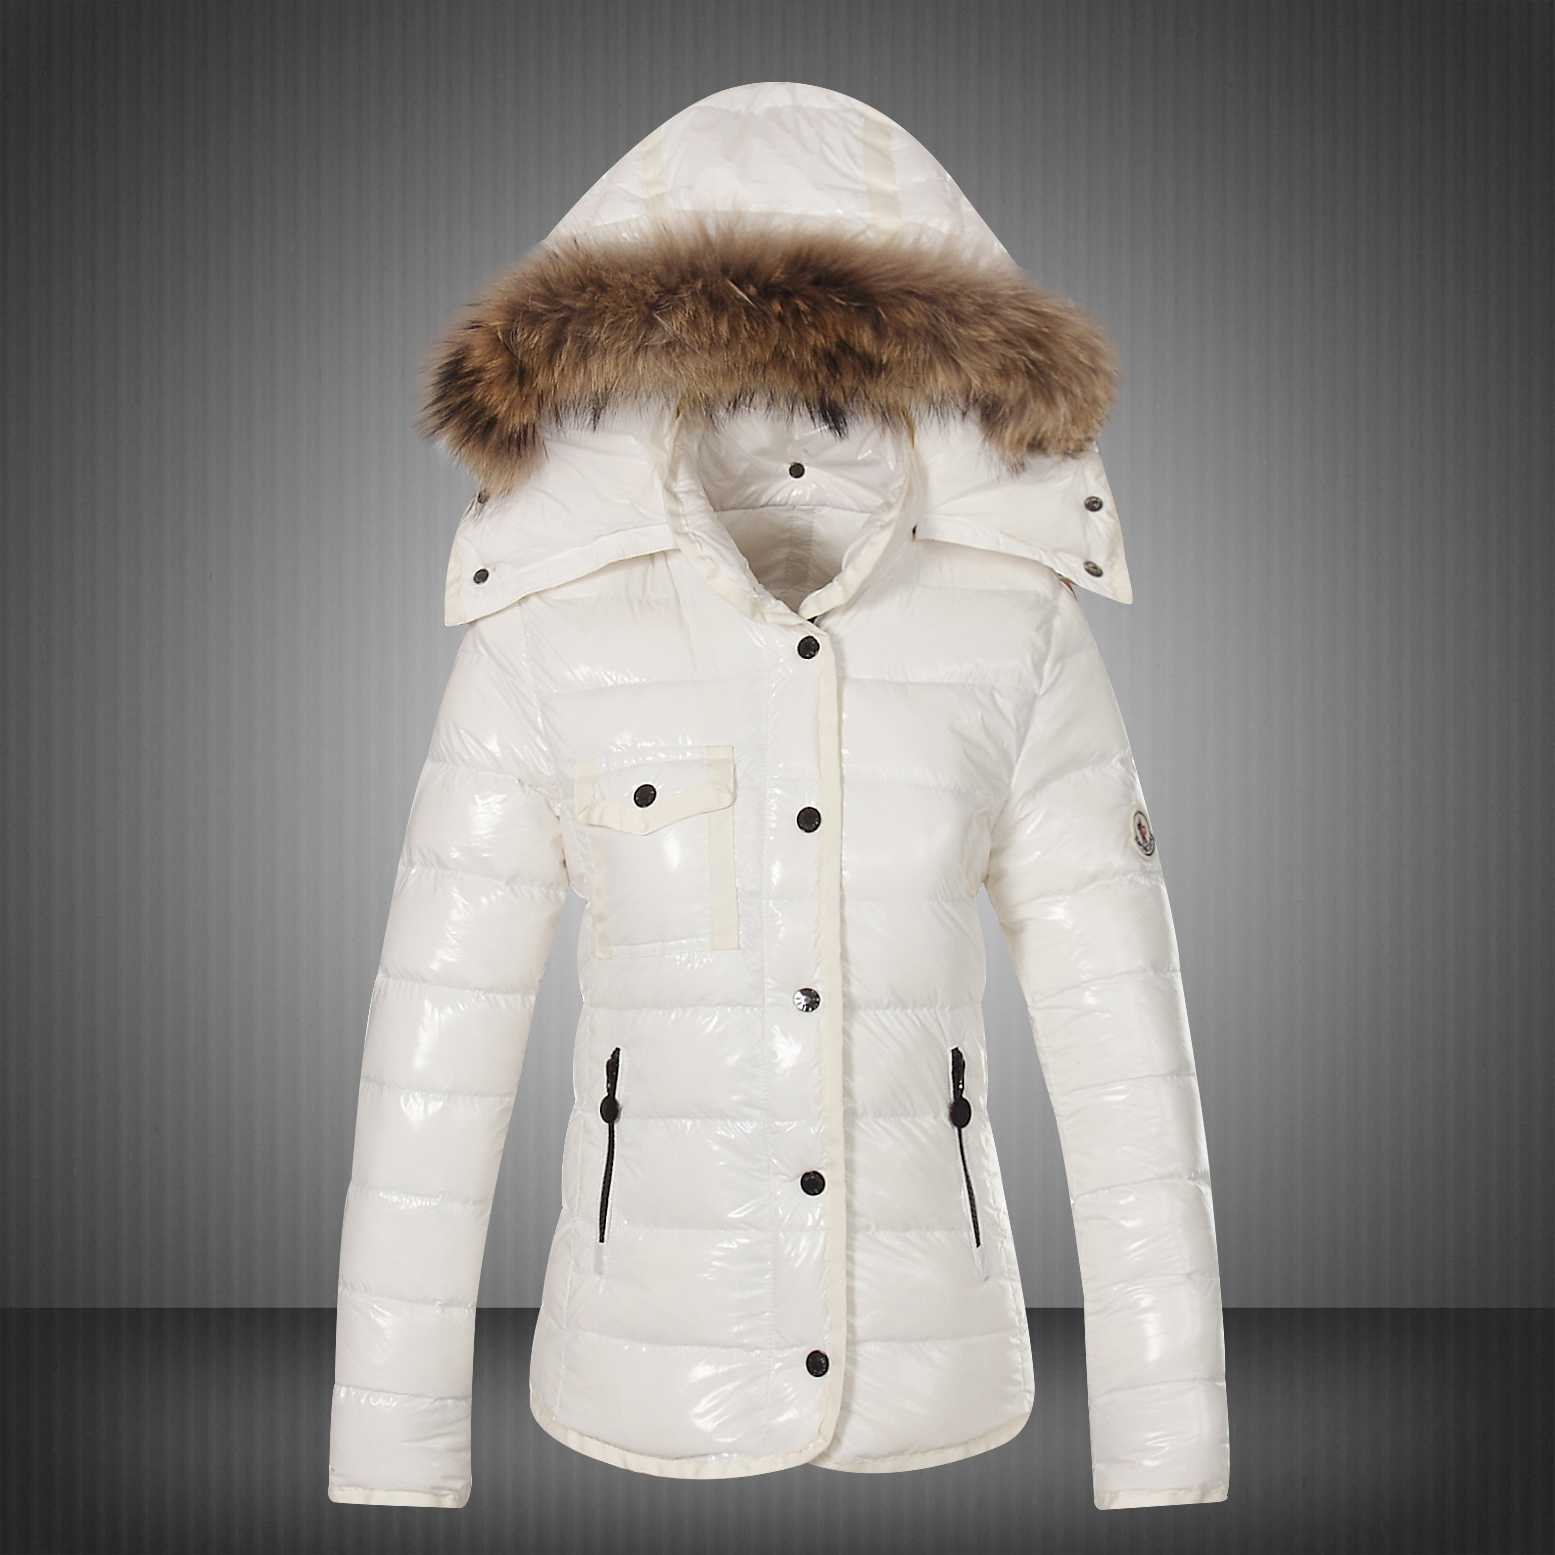 Moncler Jackets For Women White With Fur Cap UK